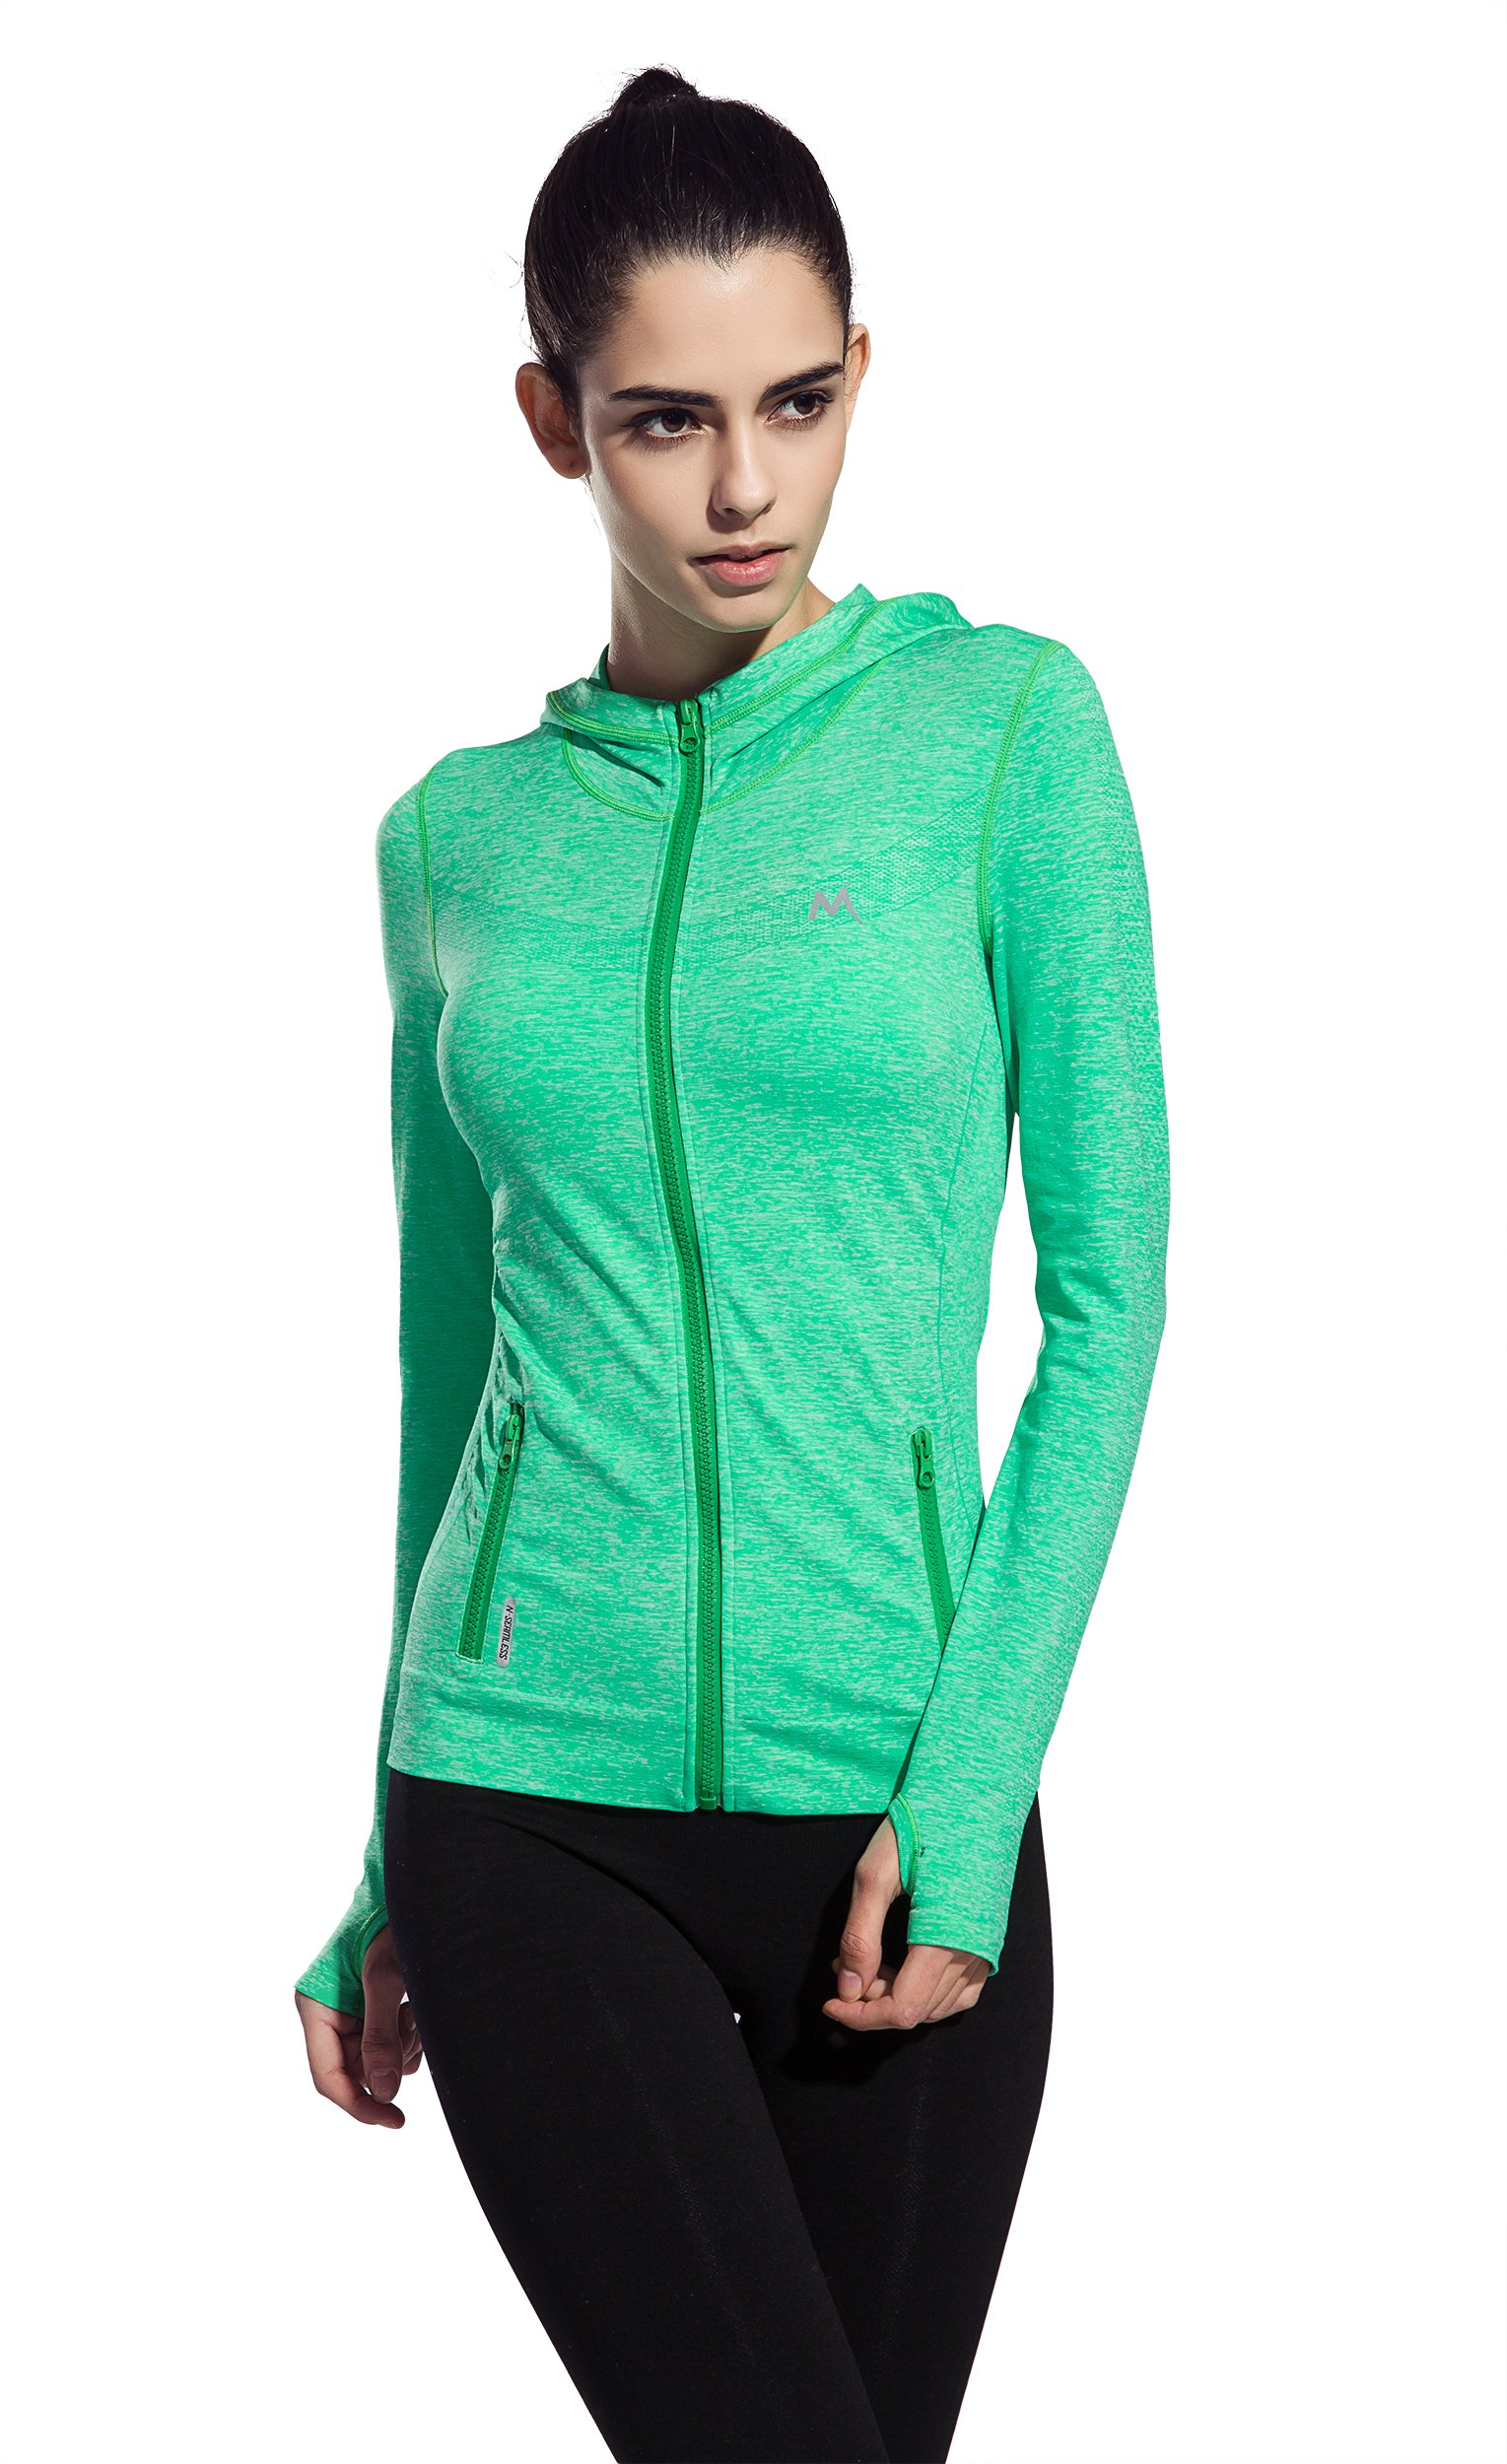 Women's Stretchy Workout Dri-Fit Hooded Jacket ( green, l)